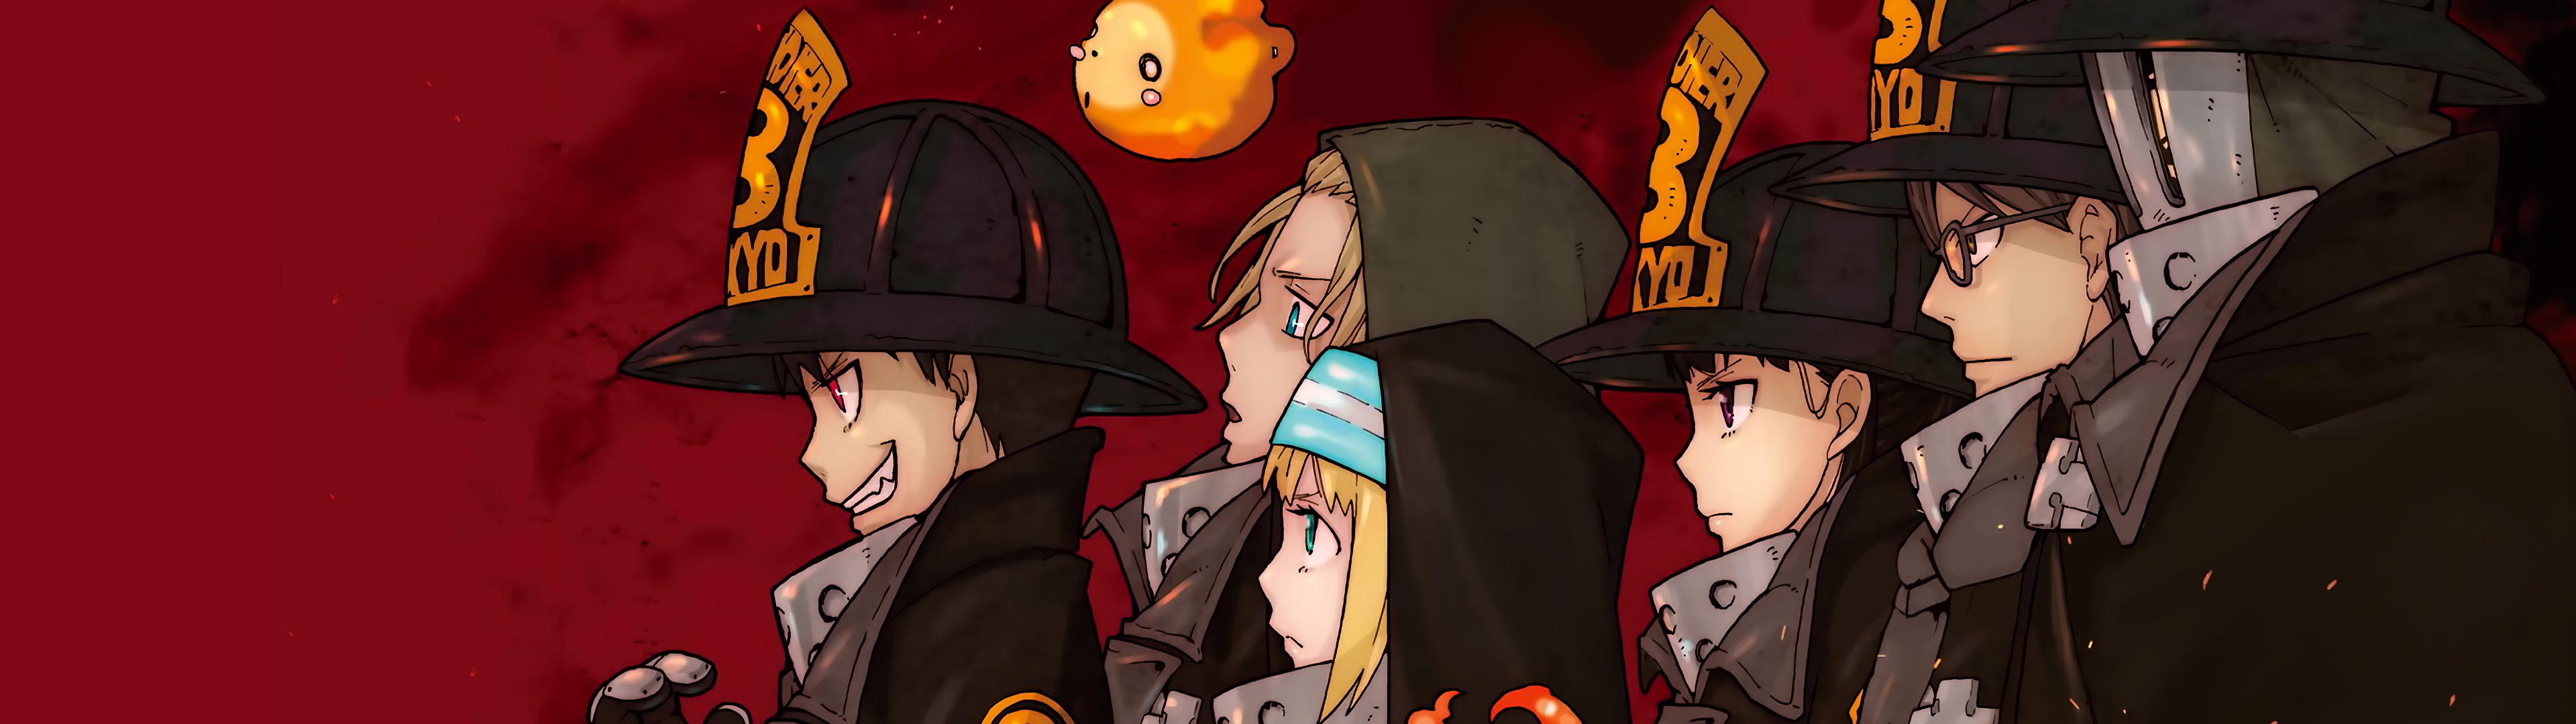 Fire Force Special Fire Force Company 8 Characters 4k Wallpaper 4 I gushed a little about it on karandi's blog. fire force special fire force company 8